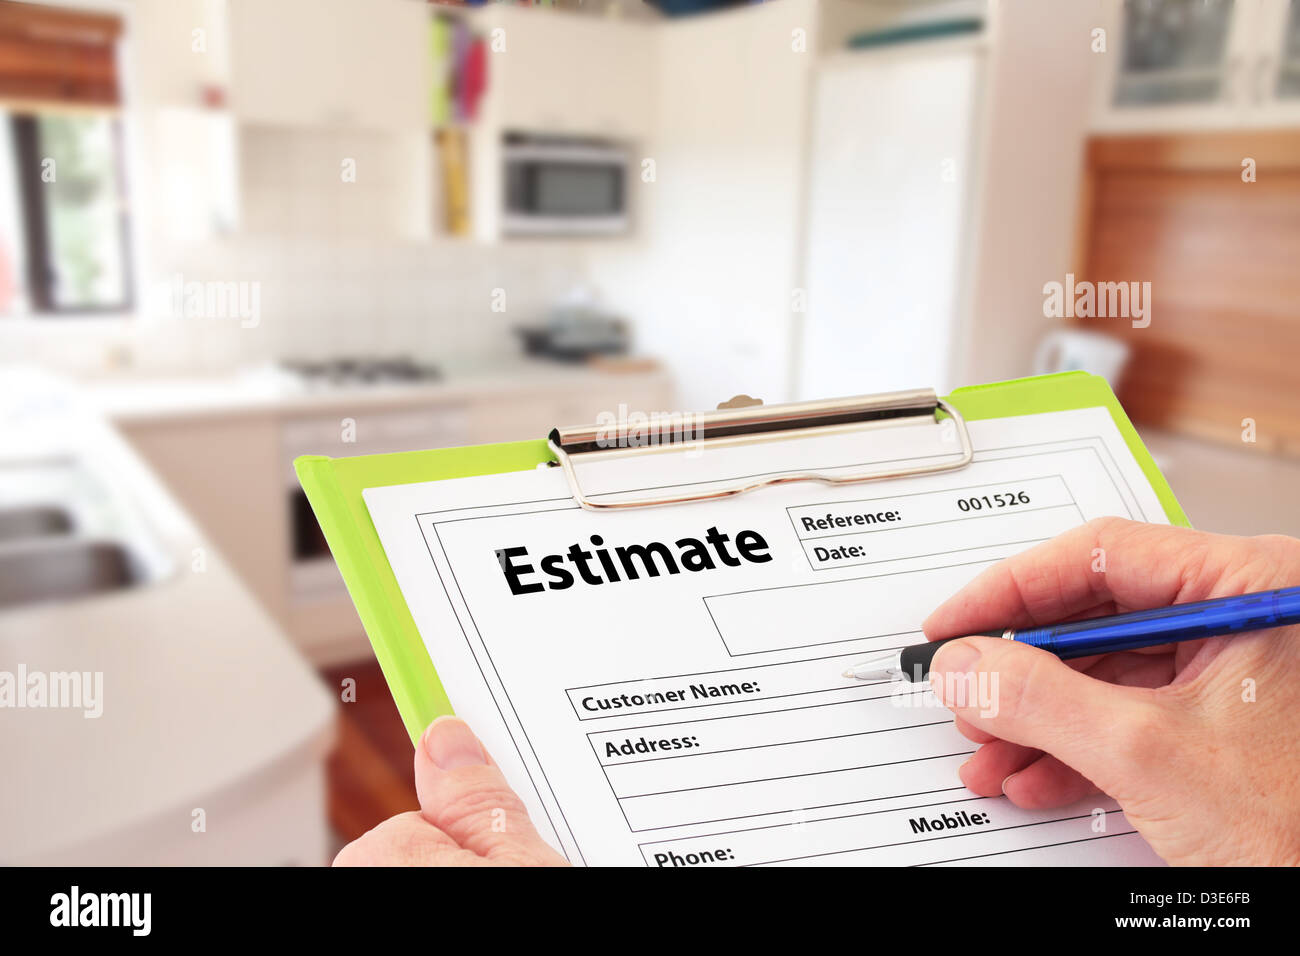 Hand Writing an Estimate for Kitchen Renovation - Stock Image